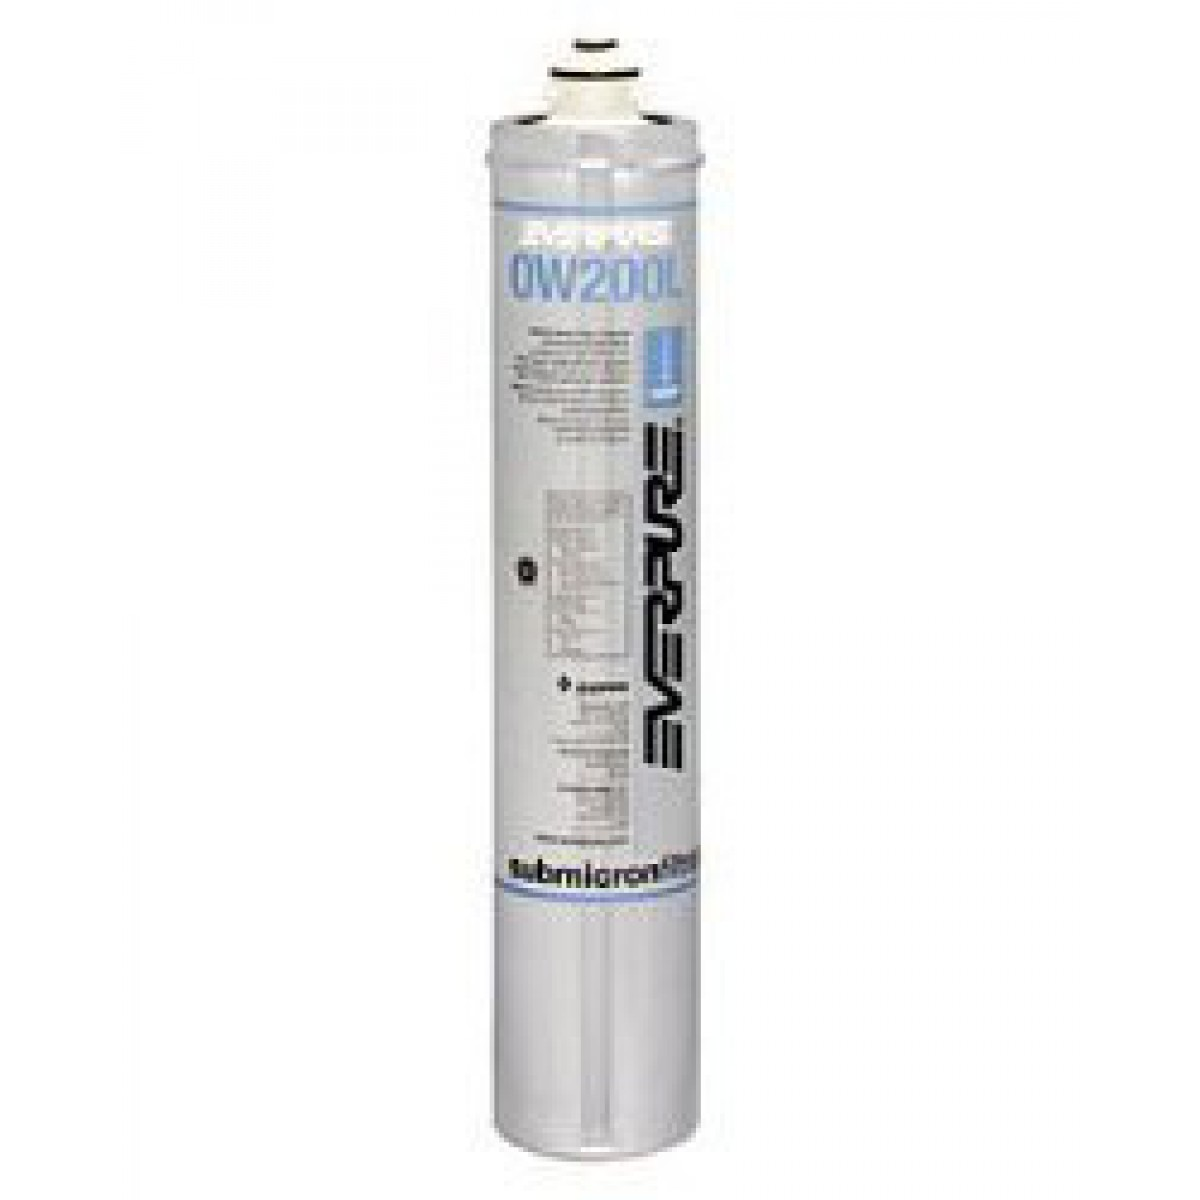 Everpure ow200l ev9619 06 water filter cartridge for Everpure reverse osmosis